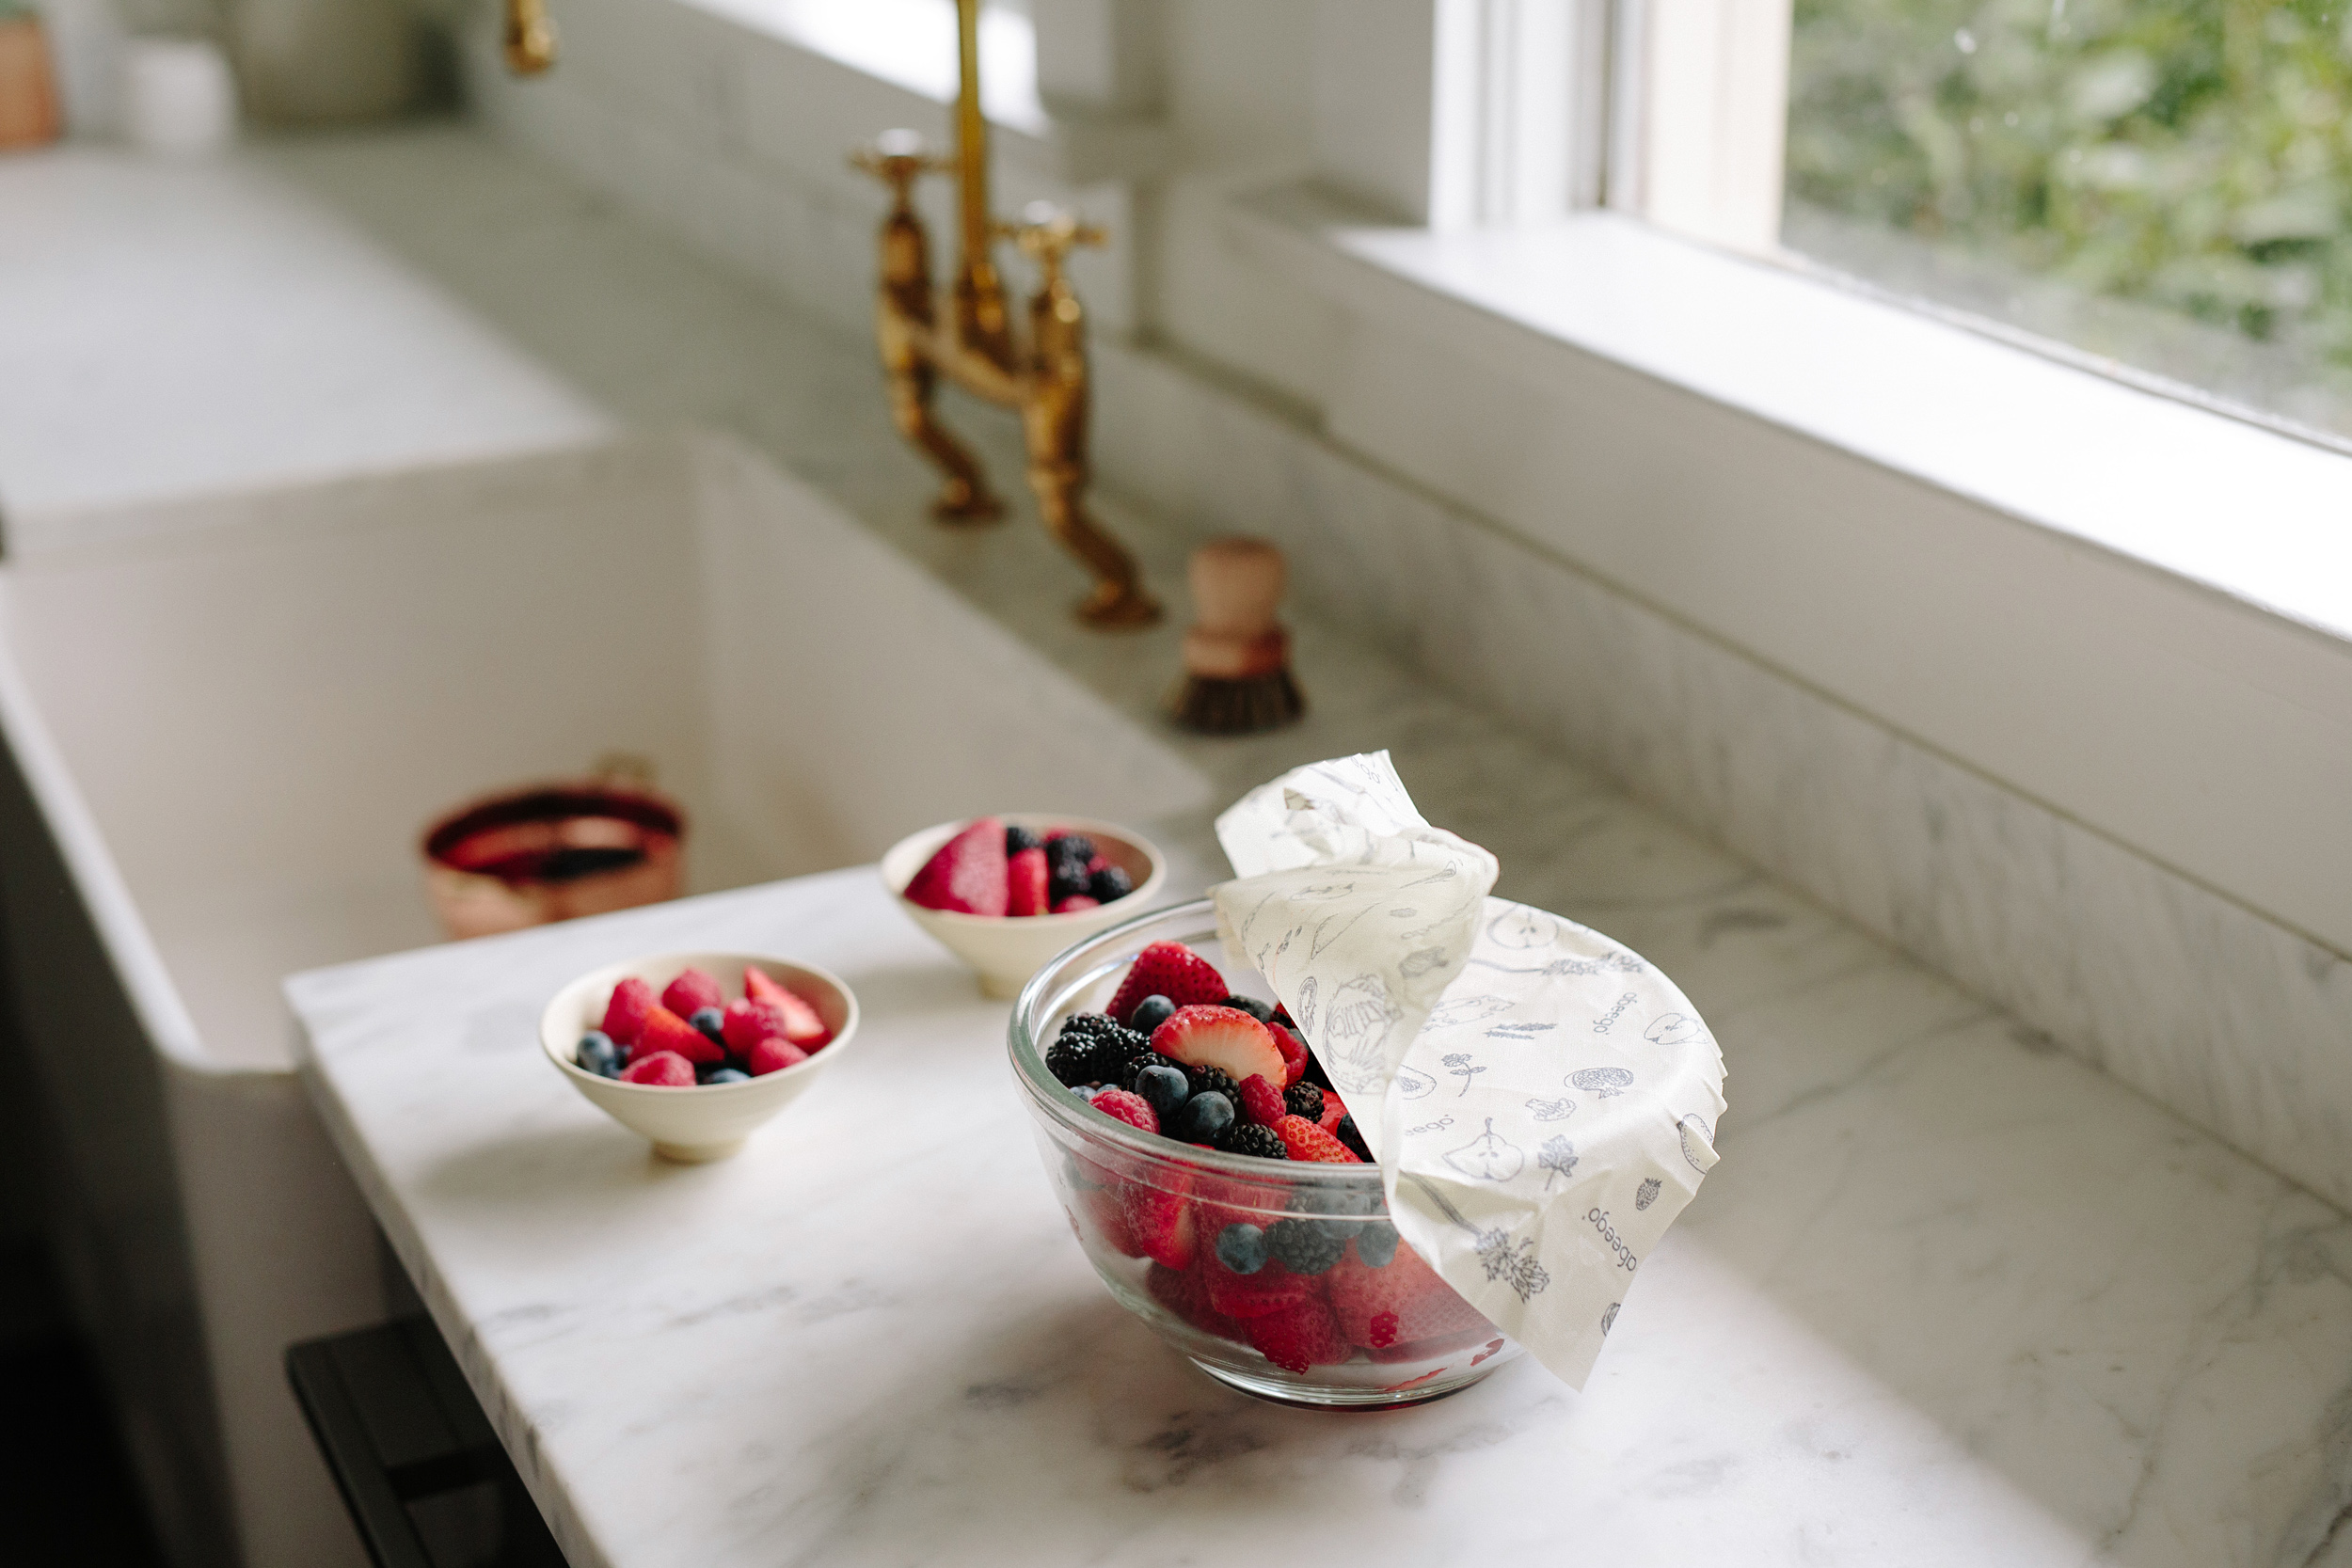 Store fruits, vegetables, cheese, herbs, bread, and cover bowls with Abeego.